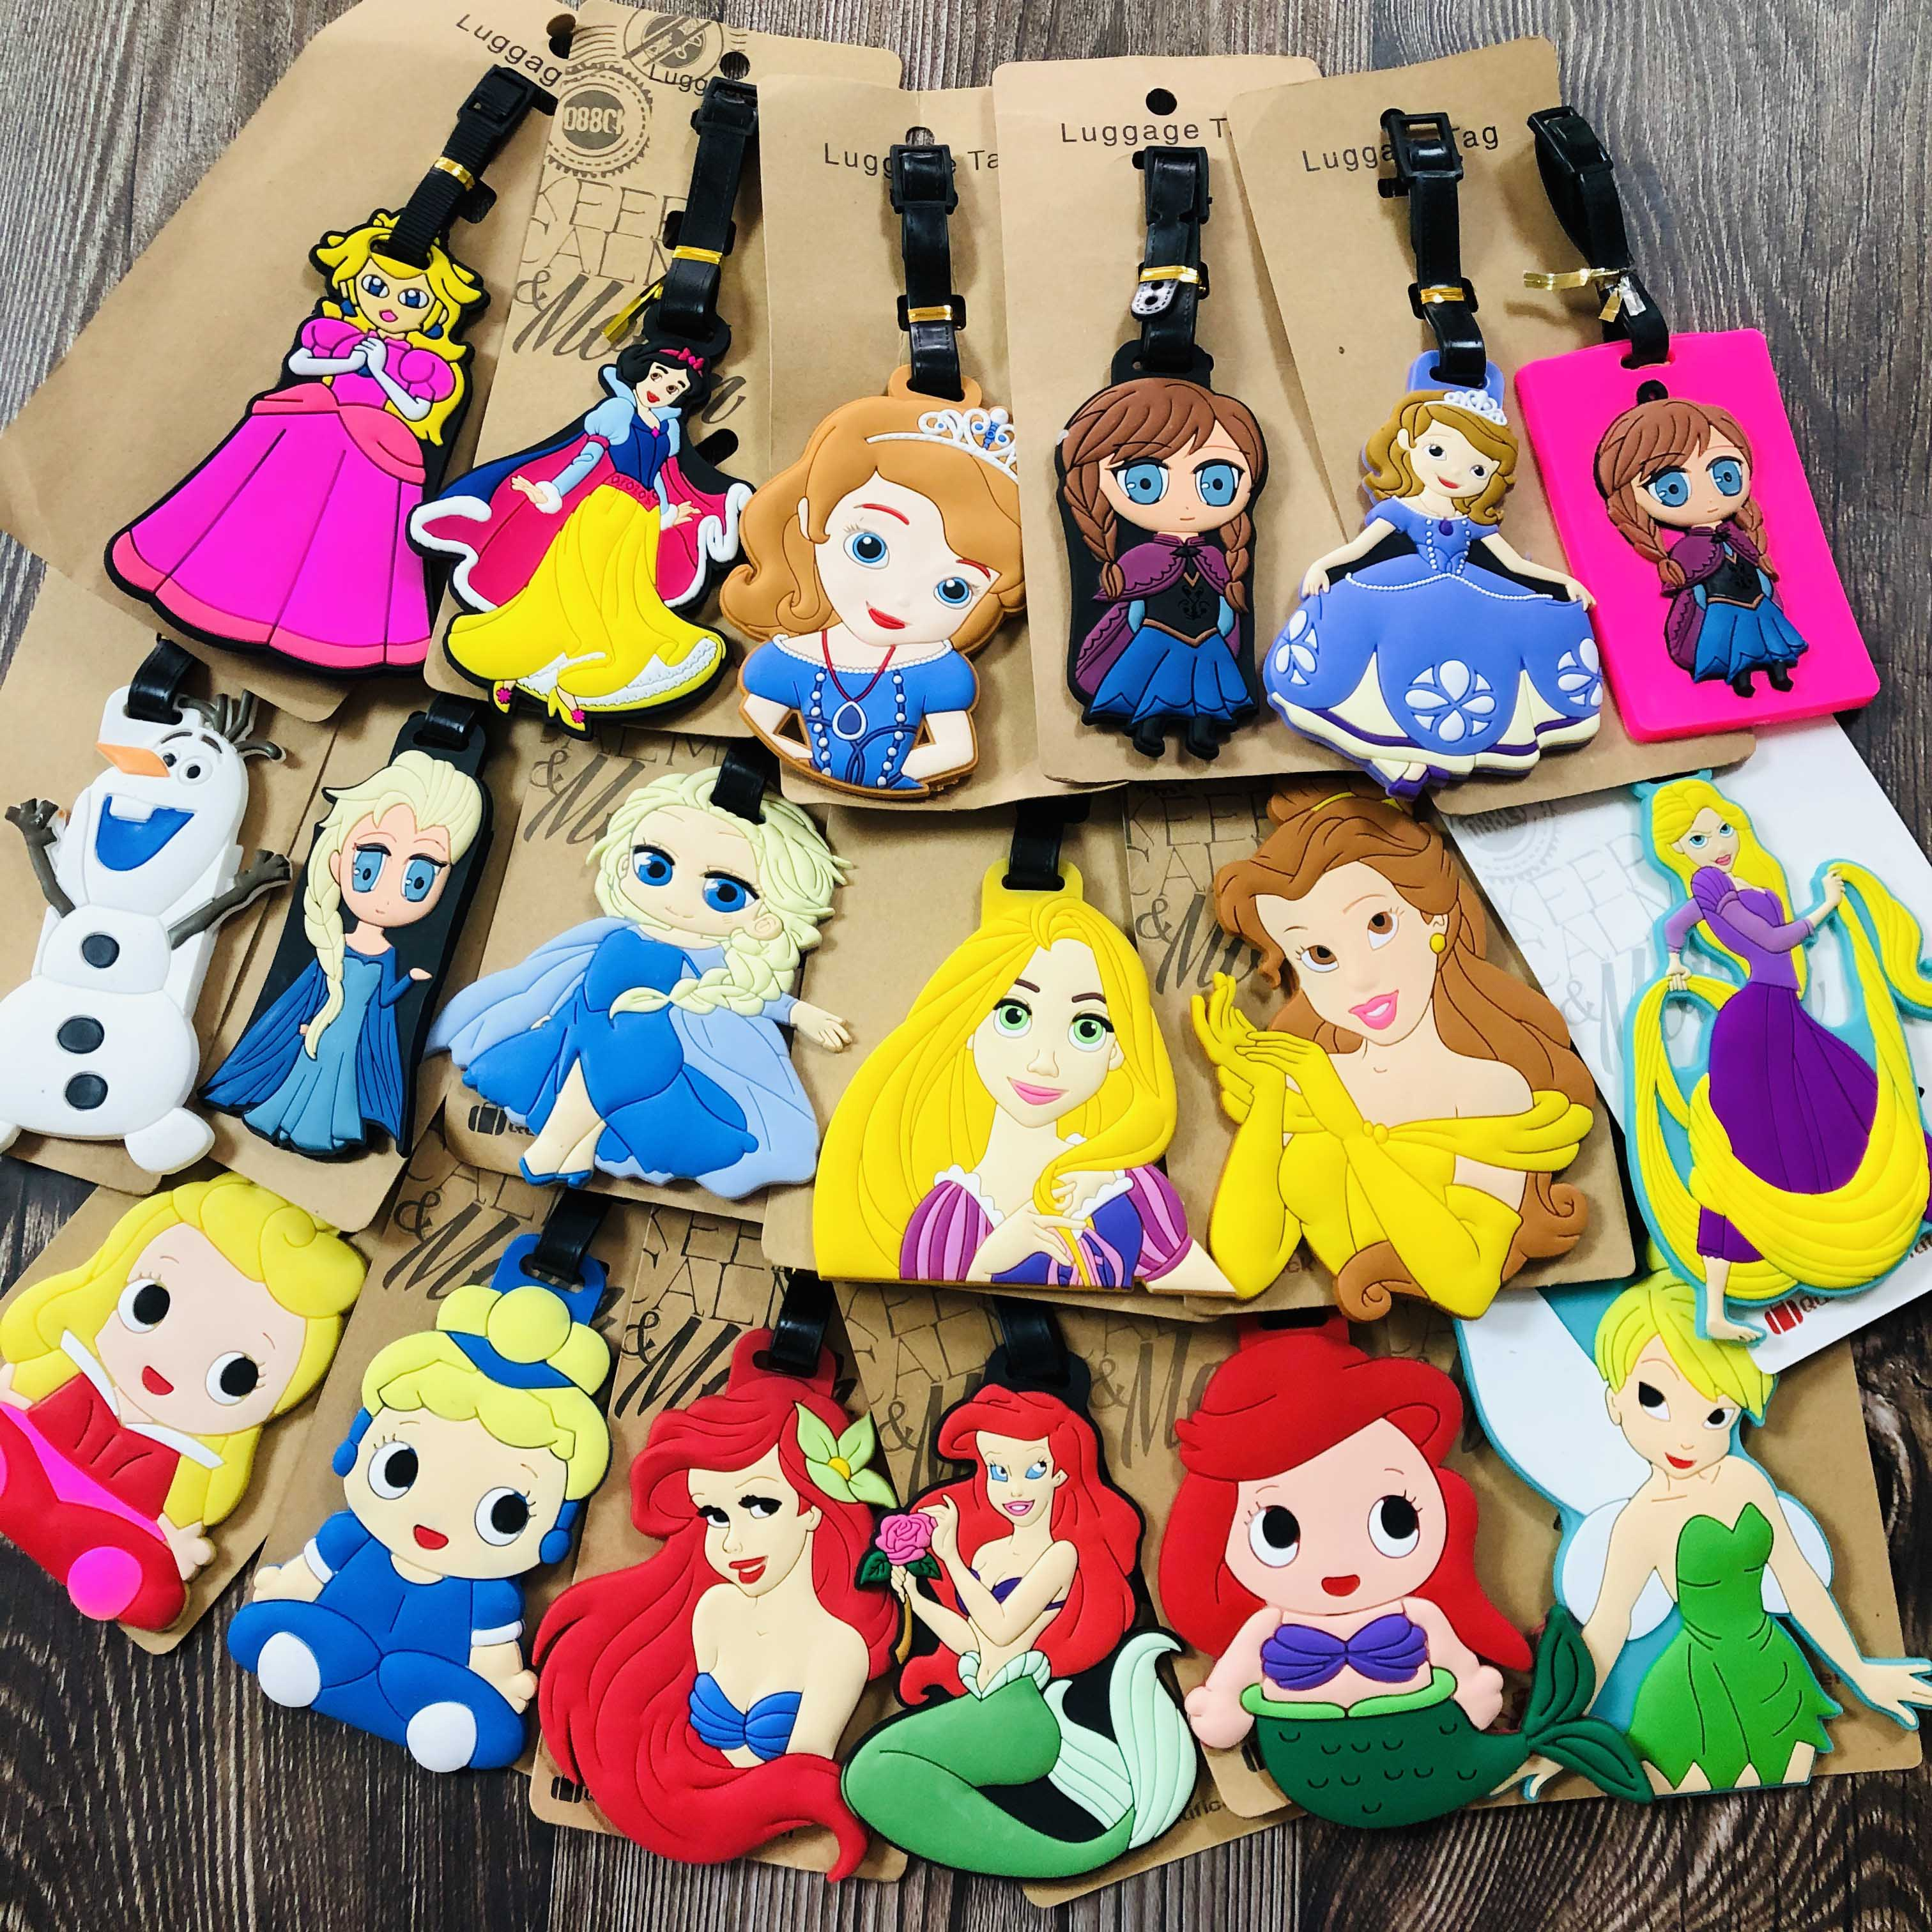 IVYYE Princess Series Anime Travel Accessories Luggage Tag Suitcase ID Portable Tags Holder Baggage Labels Gifts New